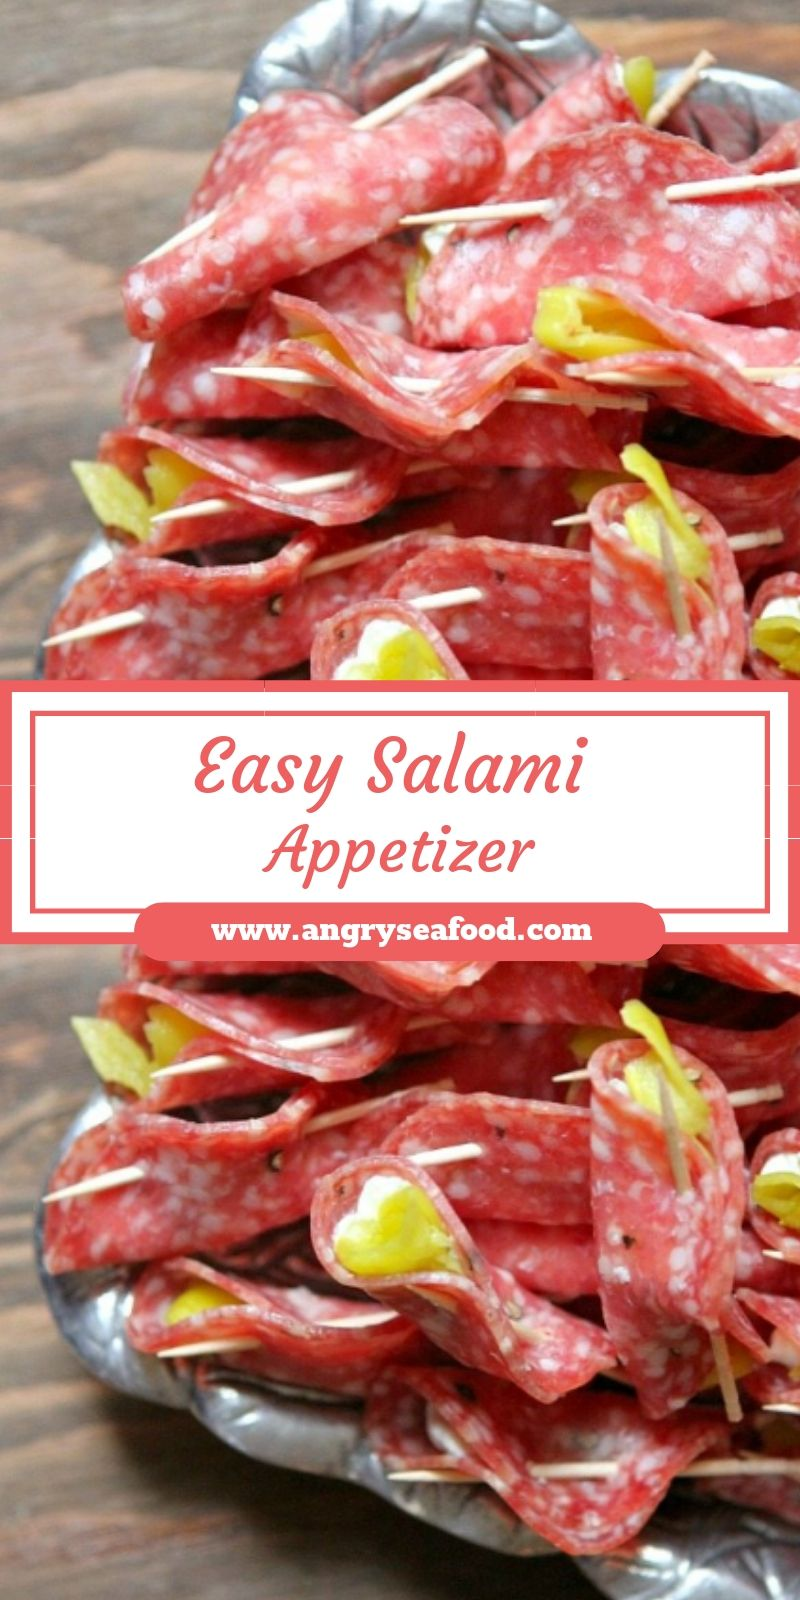 Easy Salami Appetizer